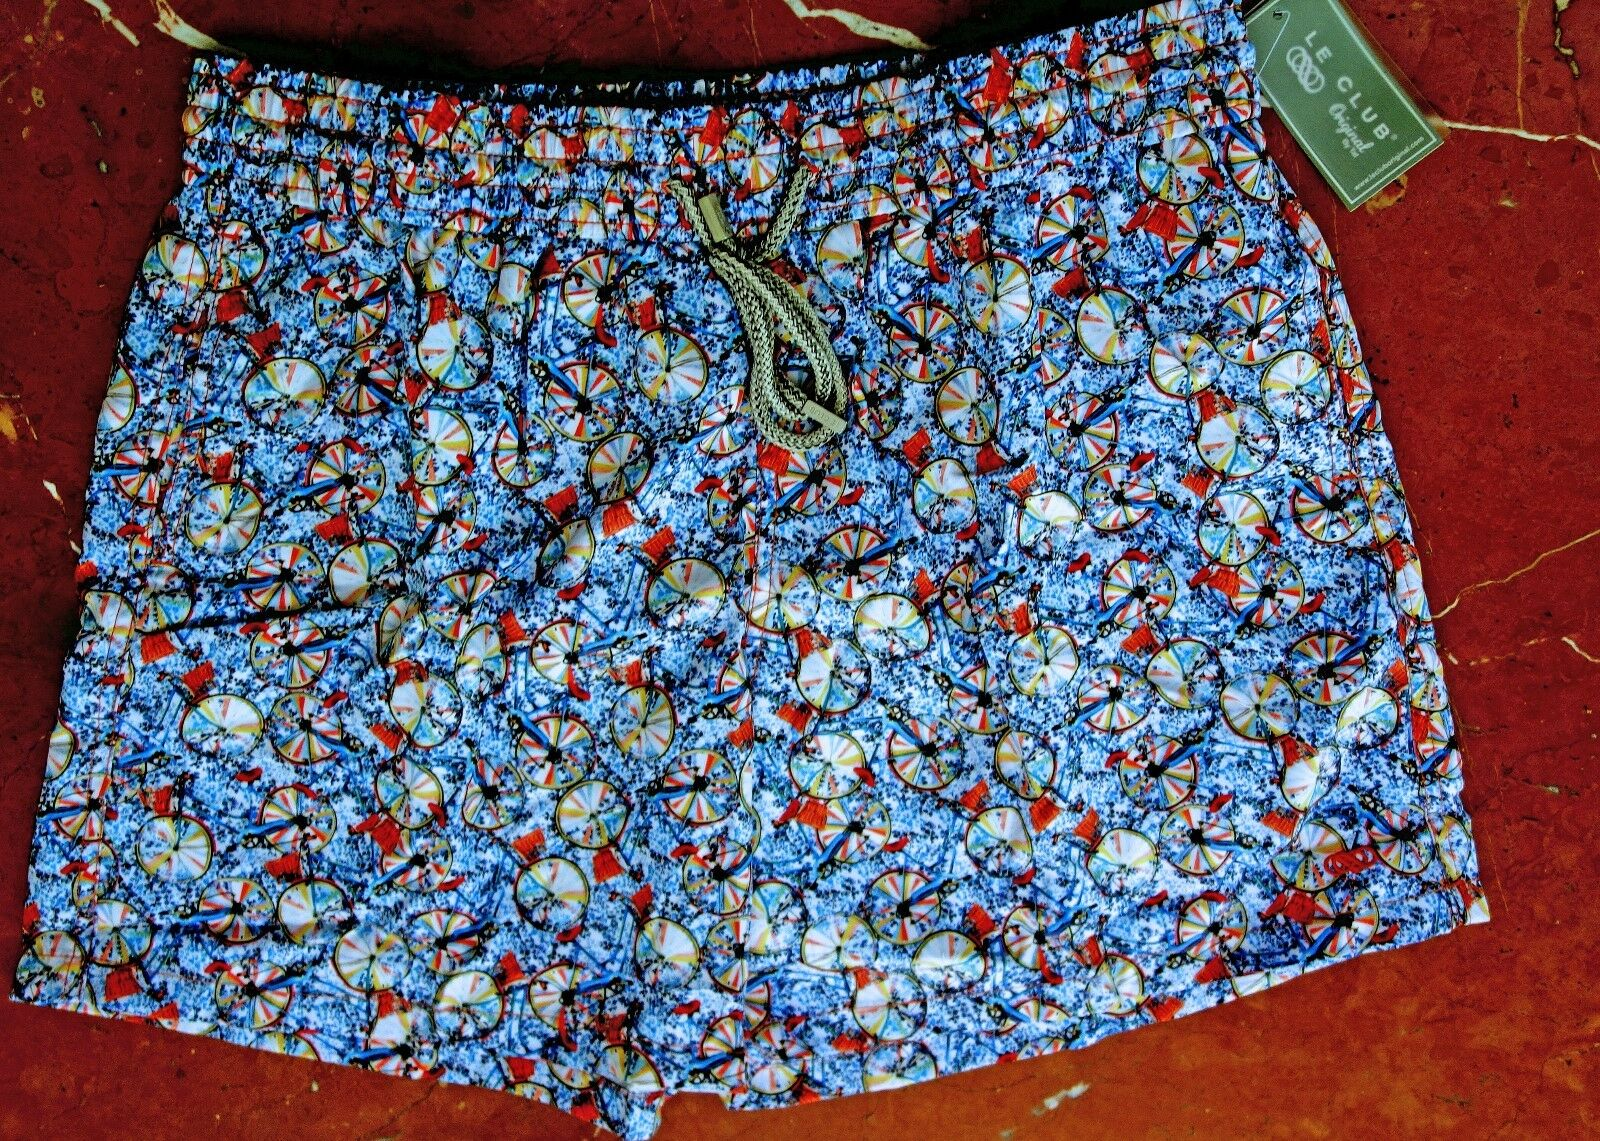 LE CLUB Old Cycle SWIM SHORTS TRUNKS Sky bluee MEN XL NWT msrp